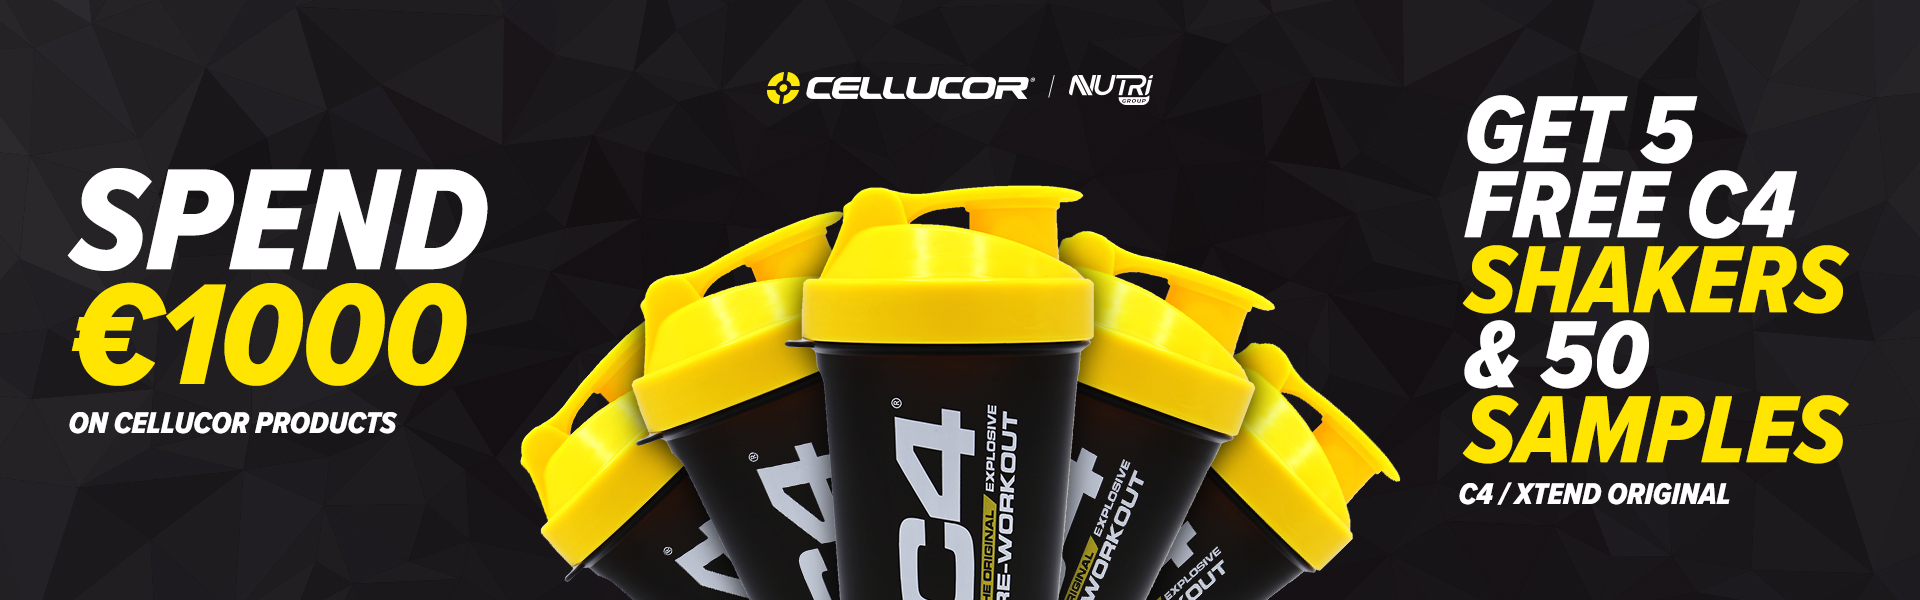 Cellucor All Products